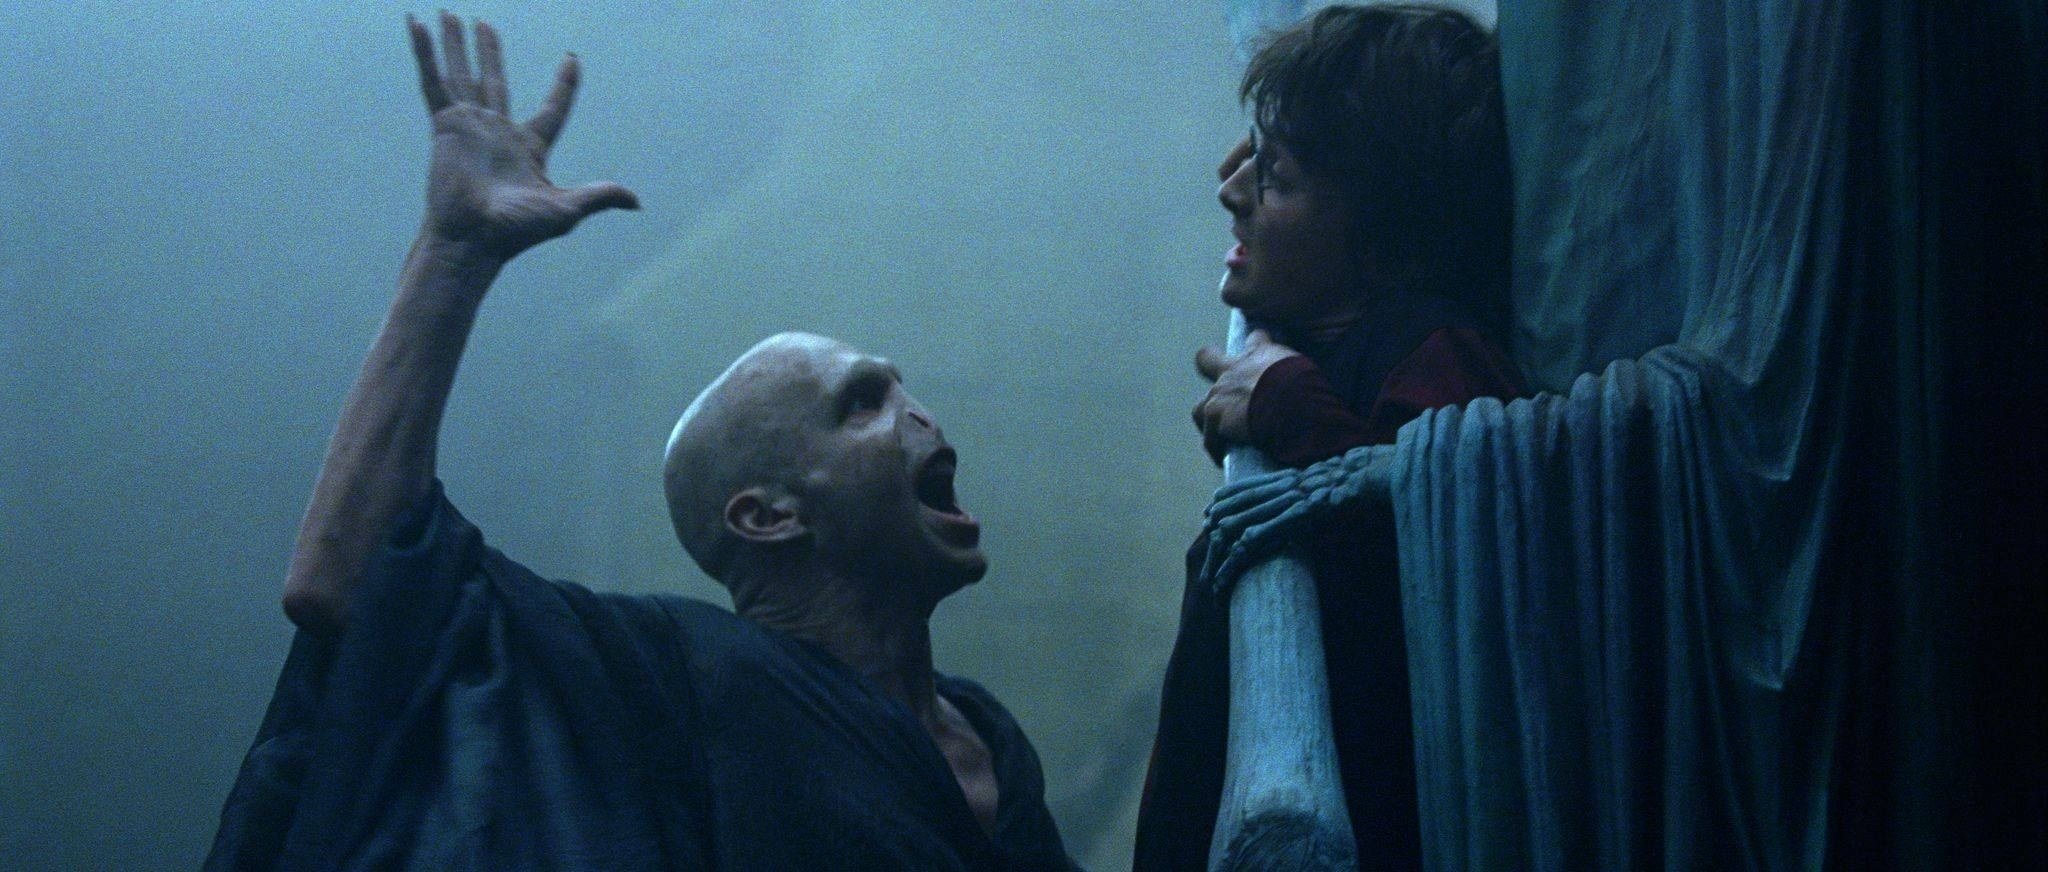 """Voldemort playing that annoying game of """"I'm not touching you"""" with Harry"""